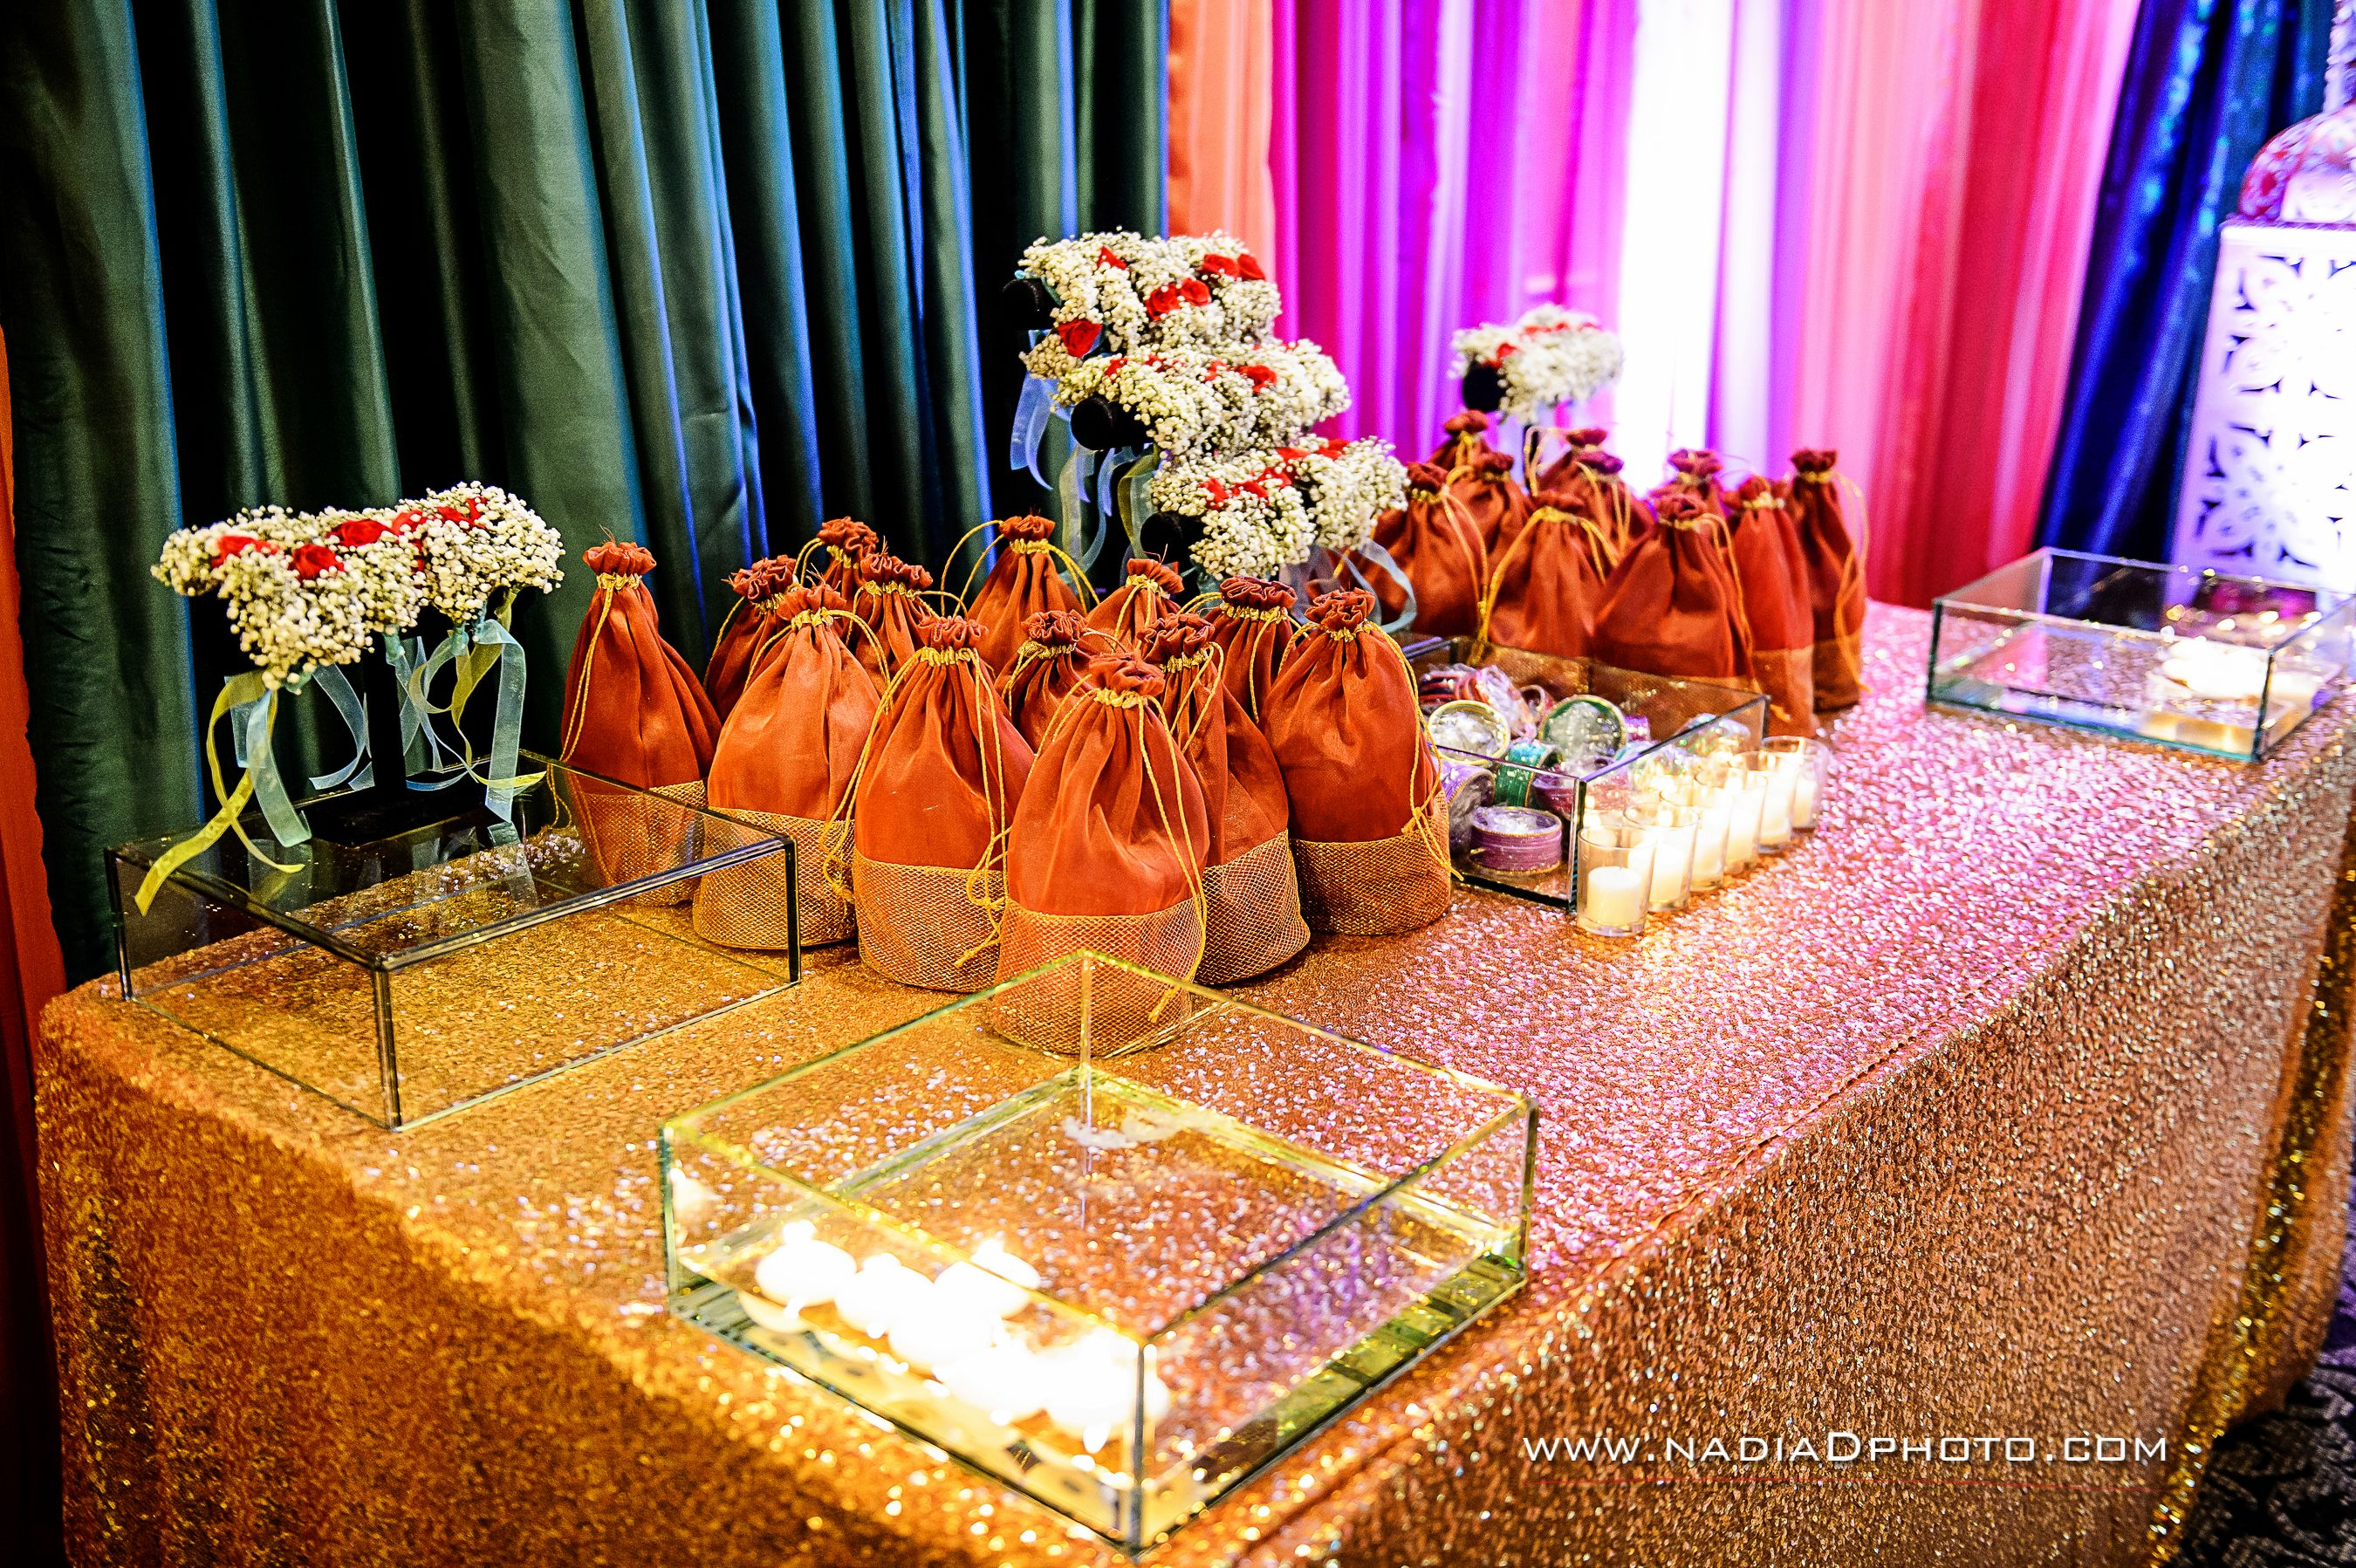 Indian Wedding Gift Bags For Guests : indian wedding decorations indian weddings wedding tables wedding ...